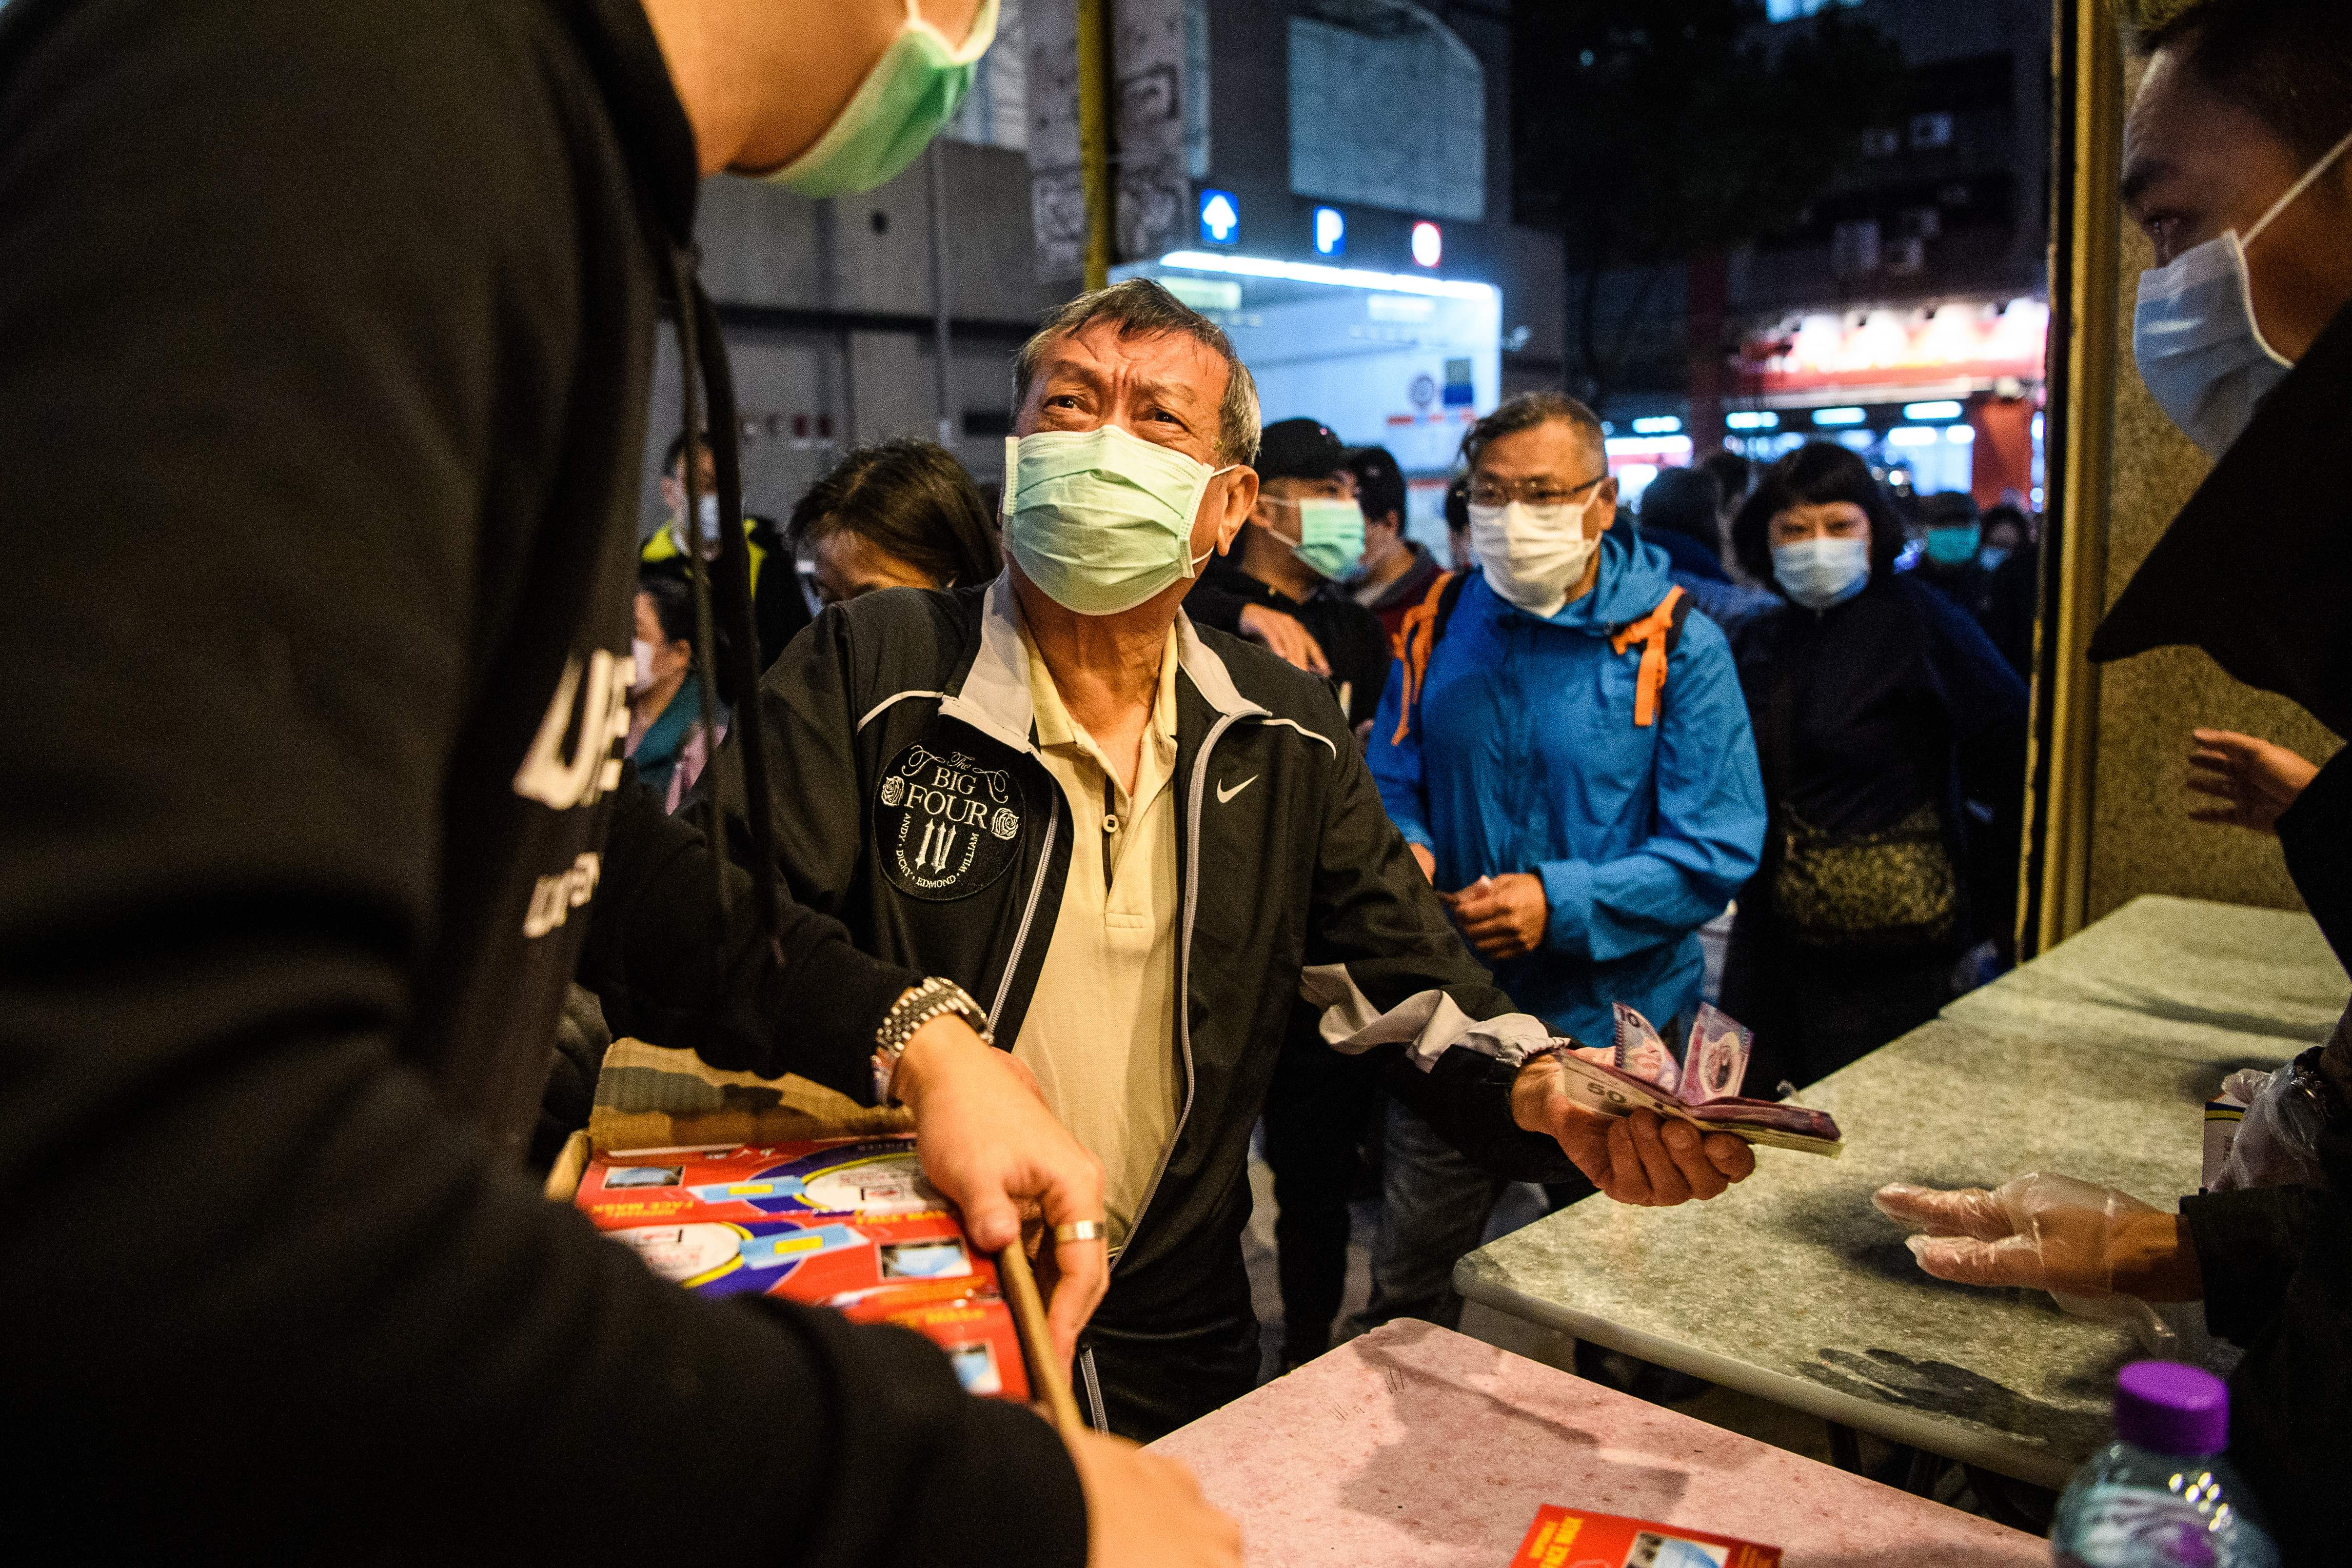 Coronavirus live updates: China says more than 2,000 people have died from the disease so far - CNBC